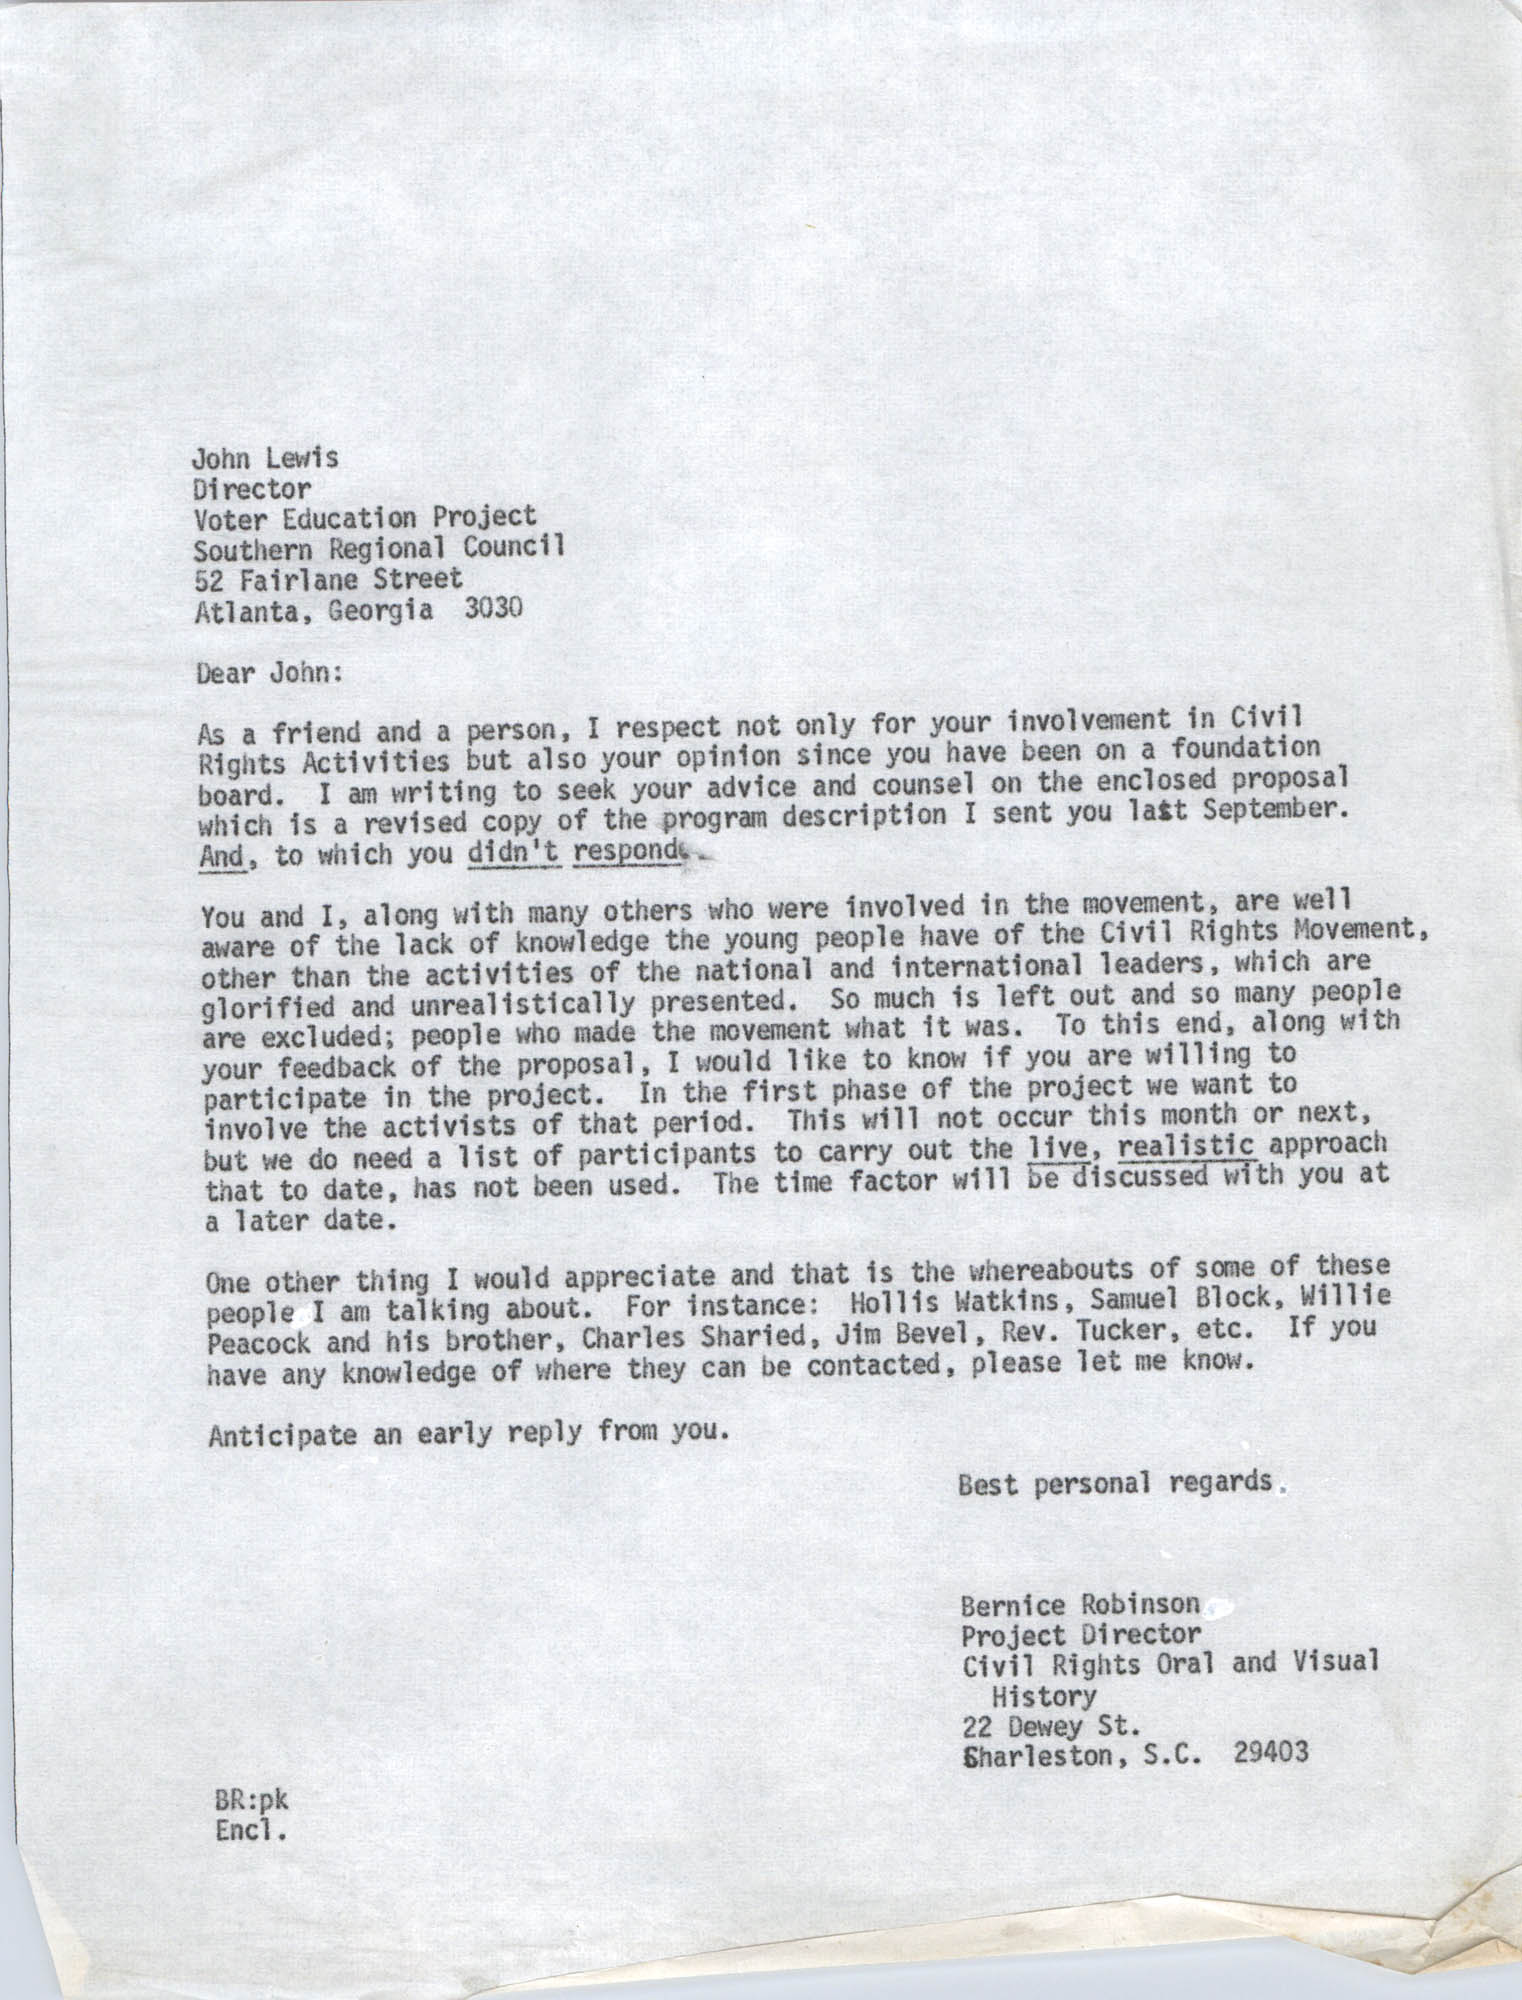 Letter from Bernice Robinson to John Lewis, May 8, 1973, Draft